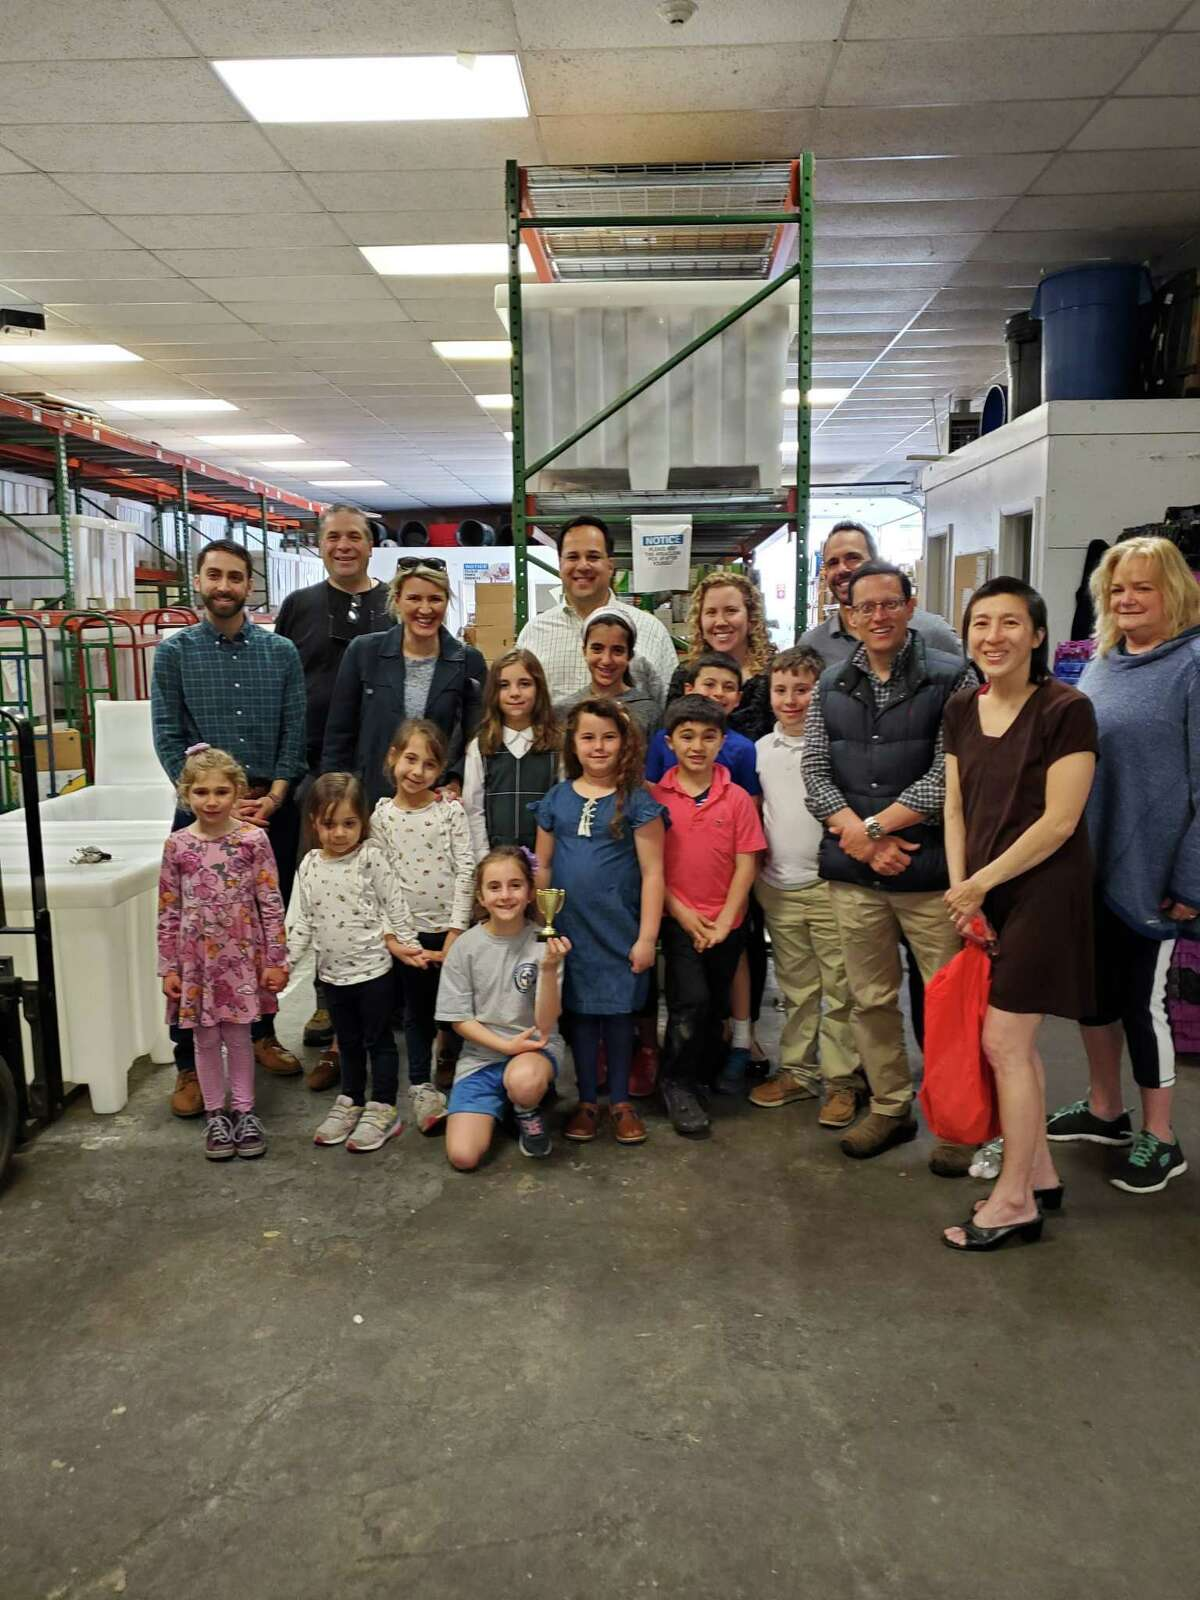 A children's group from the Church of the Archangel in Stamford visited the Lower Fairfield County Food Bank in Stamford on Wednesday, April 24.